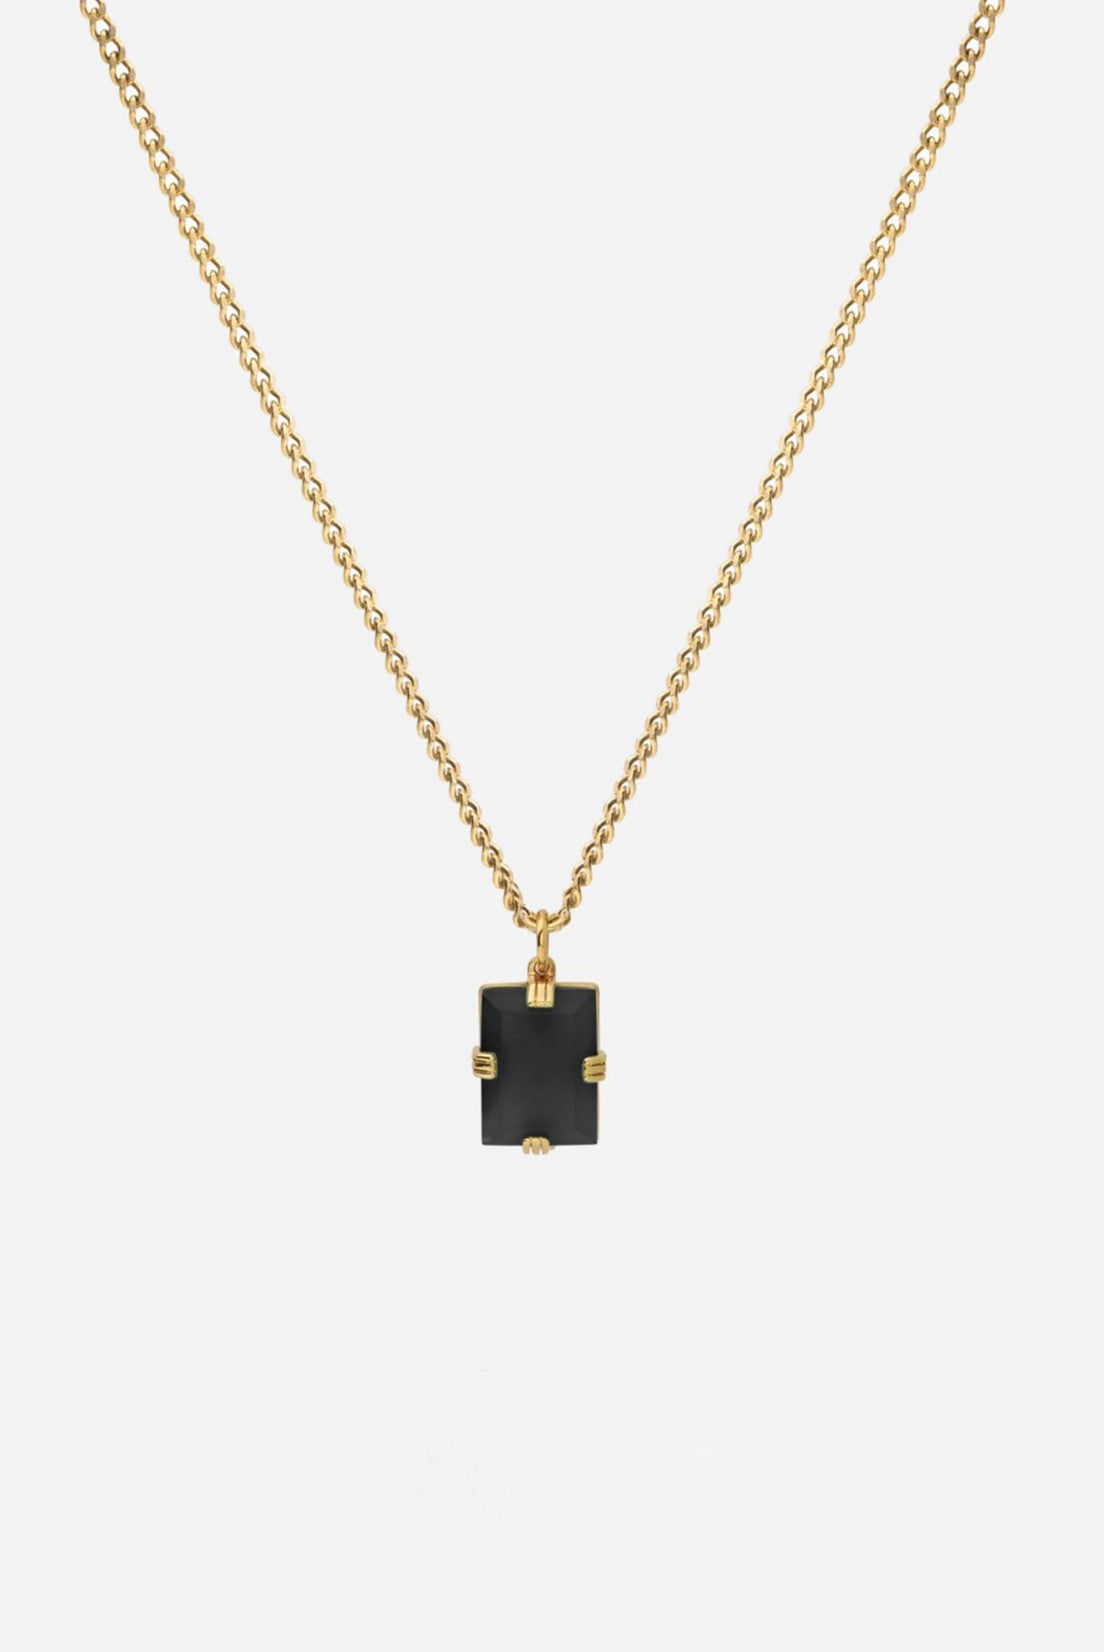 Miansai Lennox Onyx Necklace Gold Vermeil